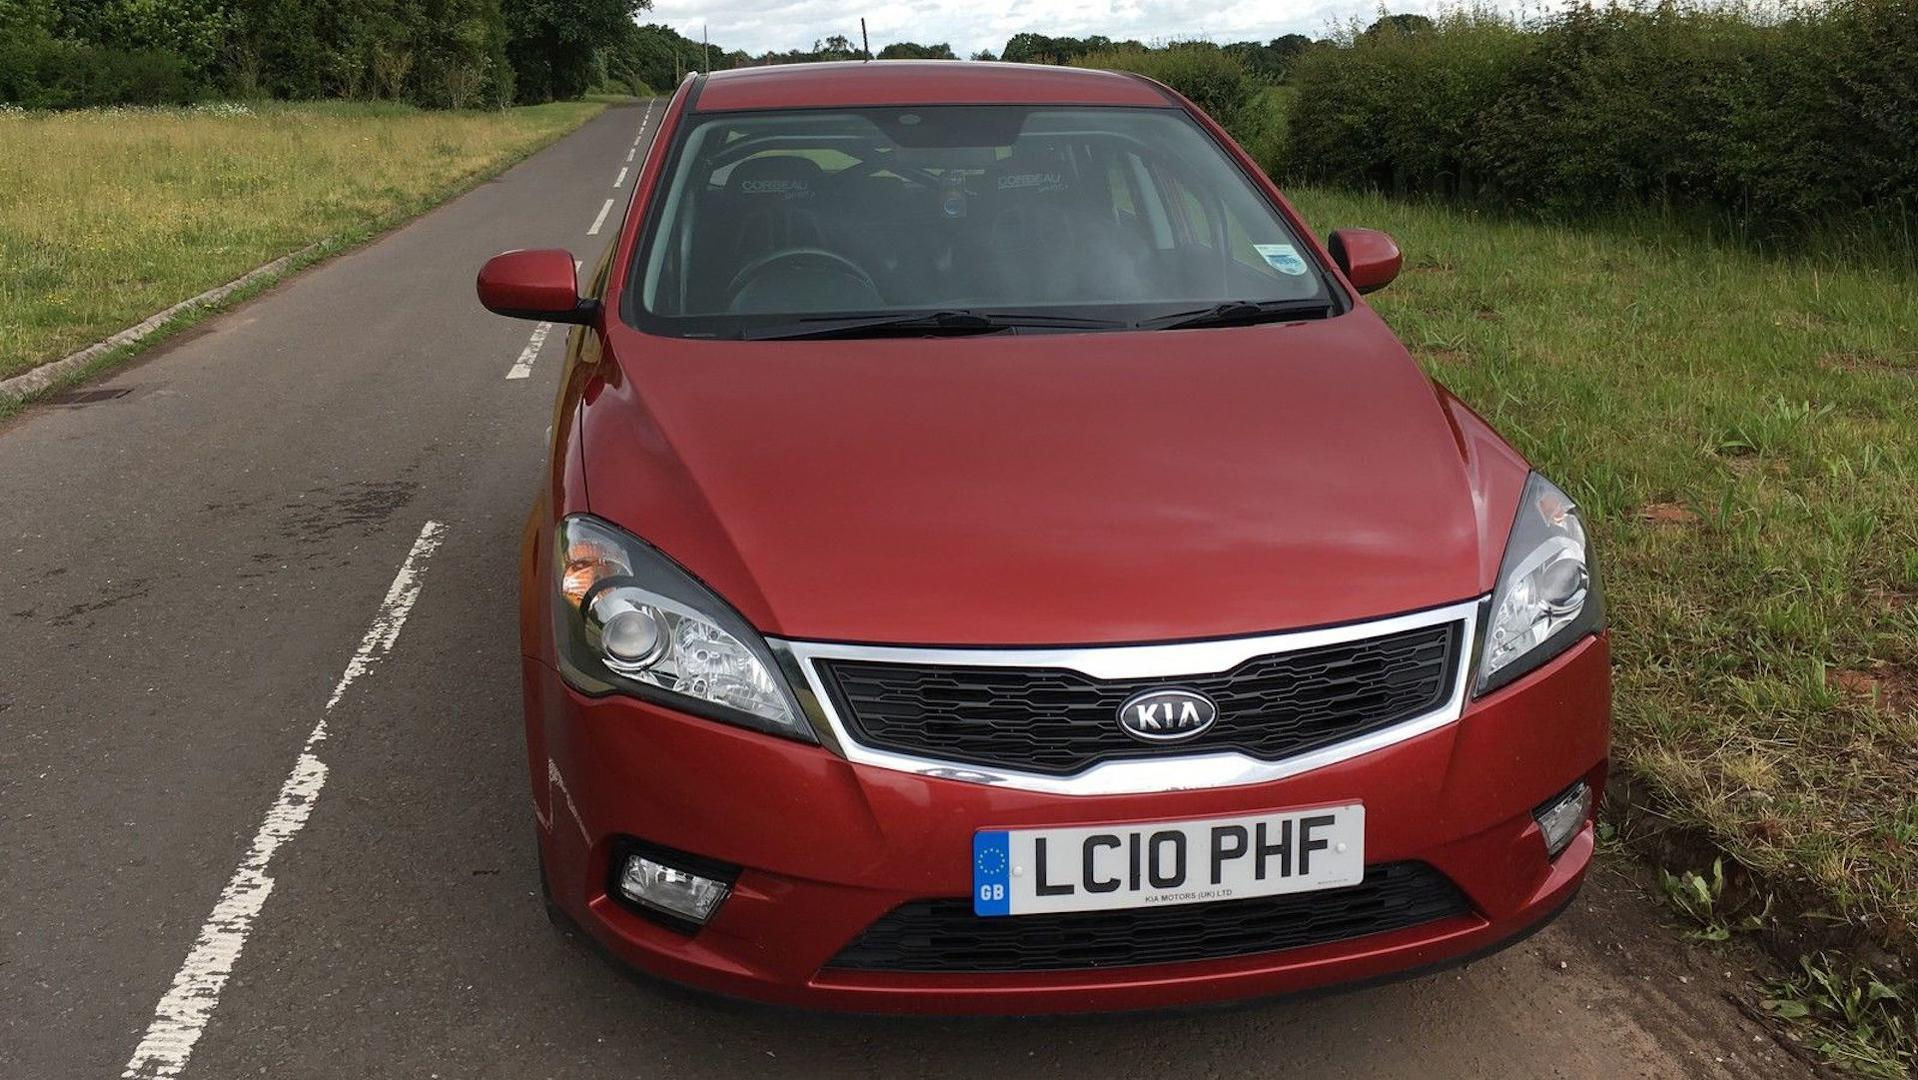 Top_Gear_Kia_Ceed_01